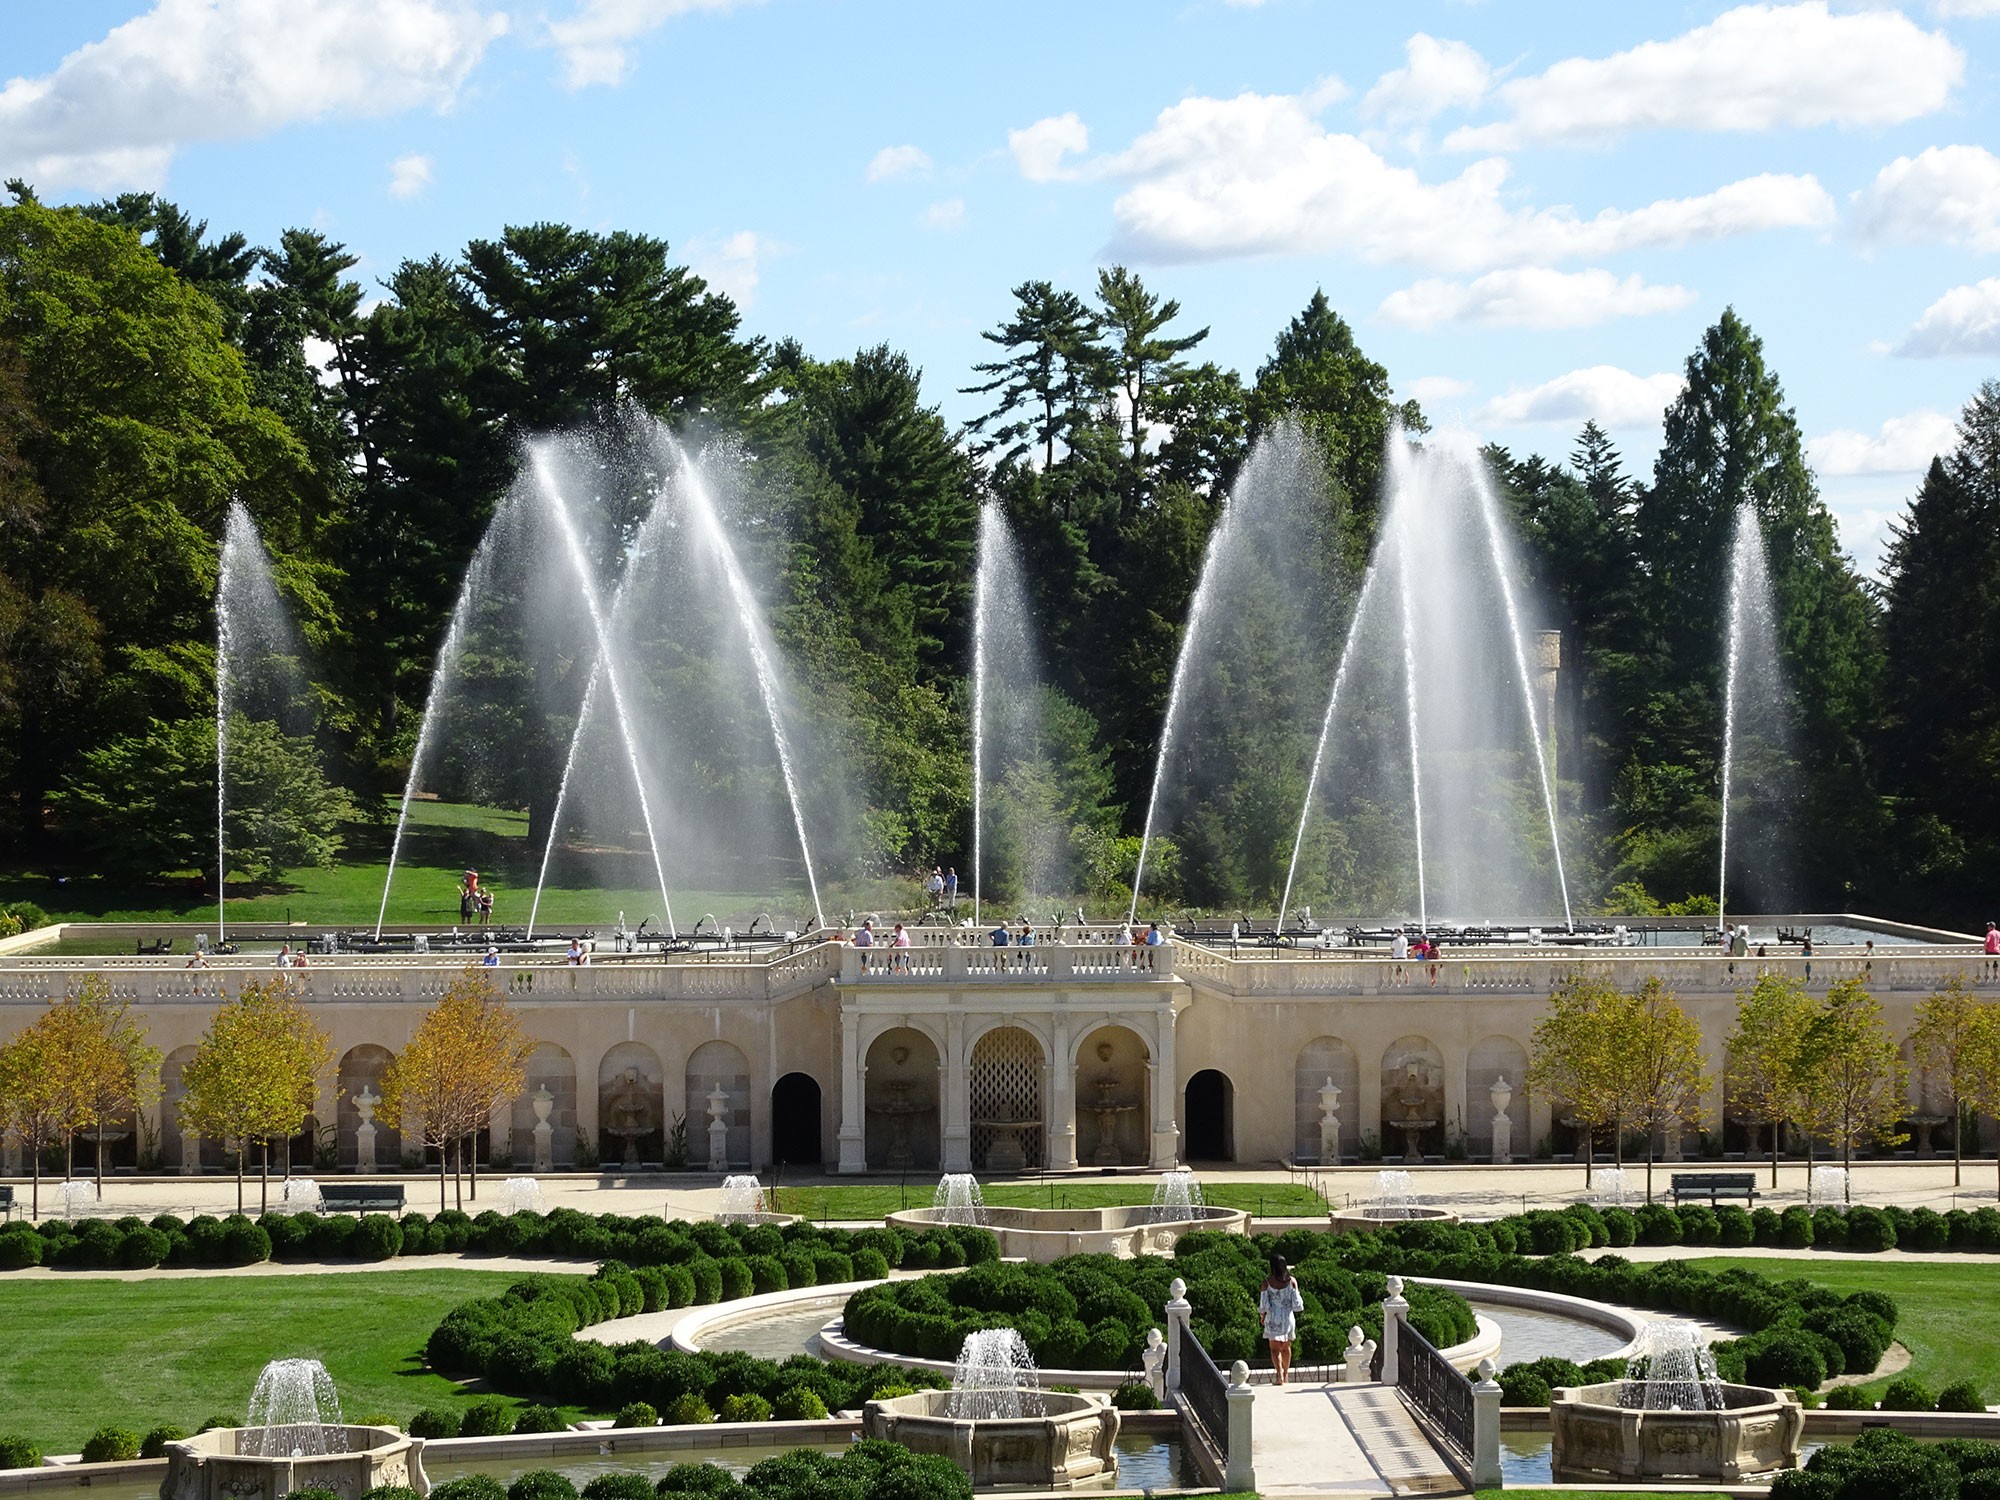 Dancing fountains at Longwood gardens